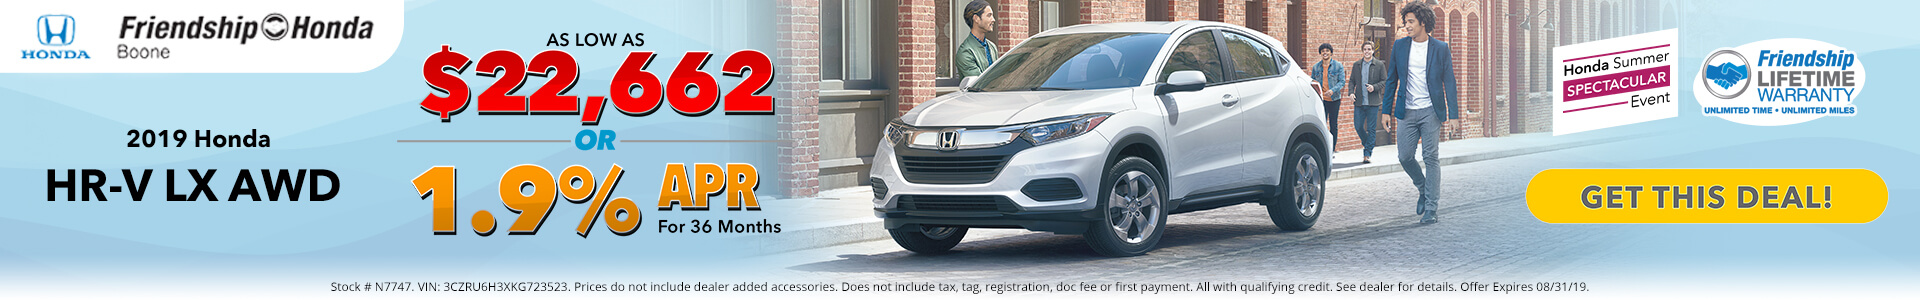 Honda HR-V $22,662 Purchase